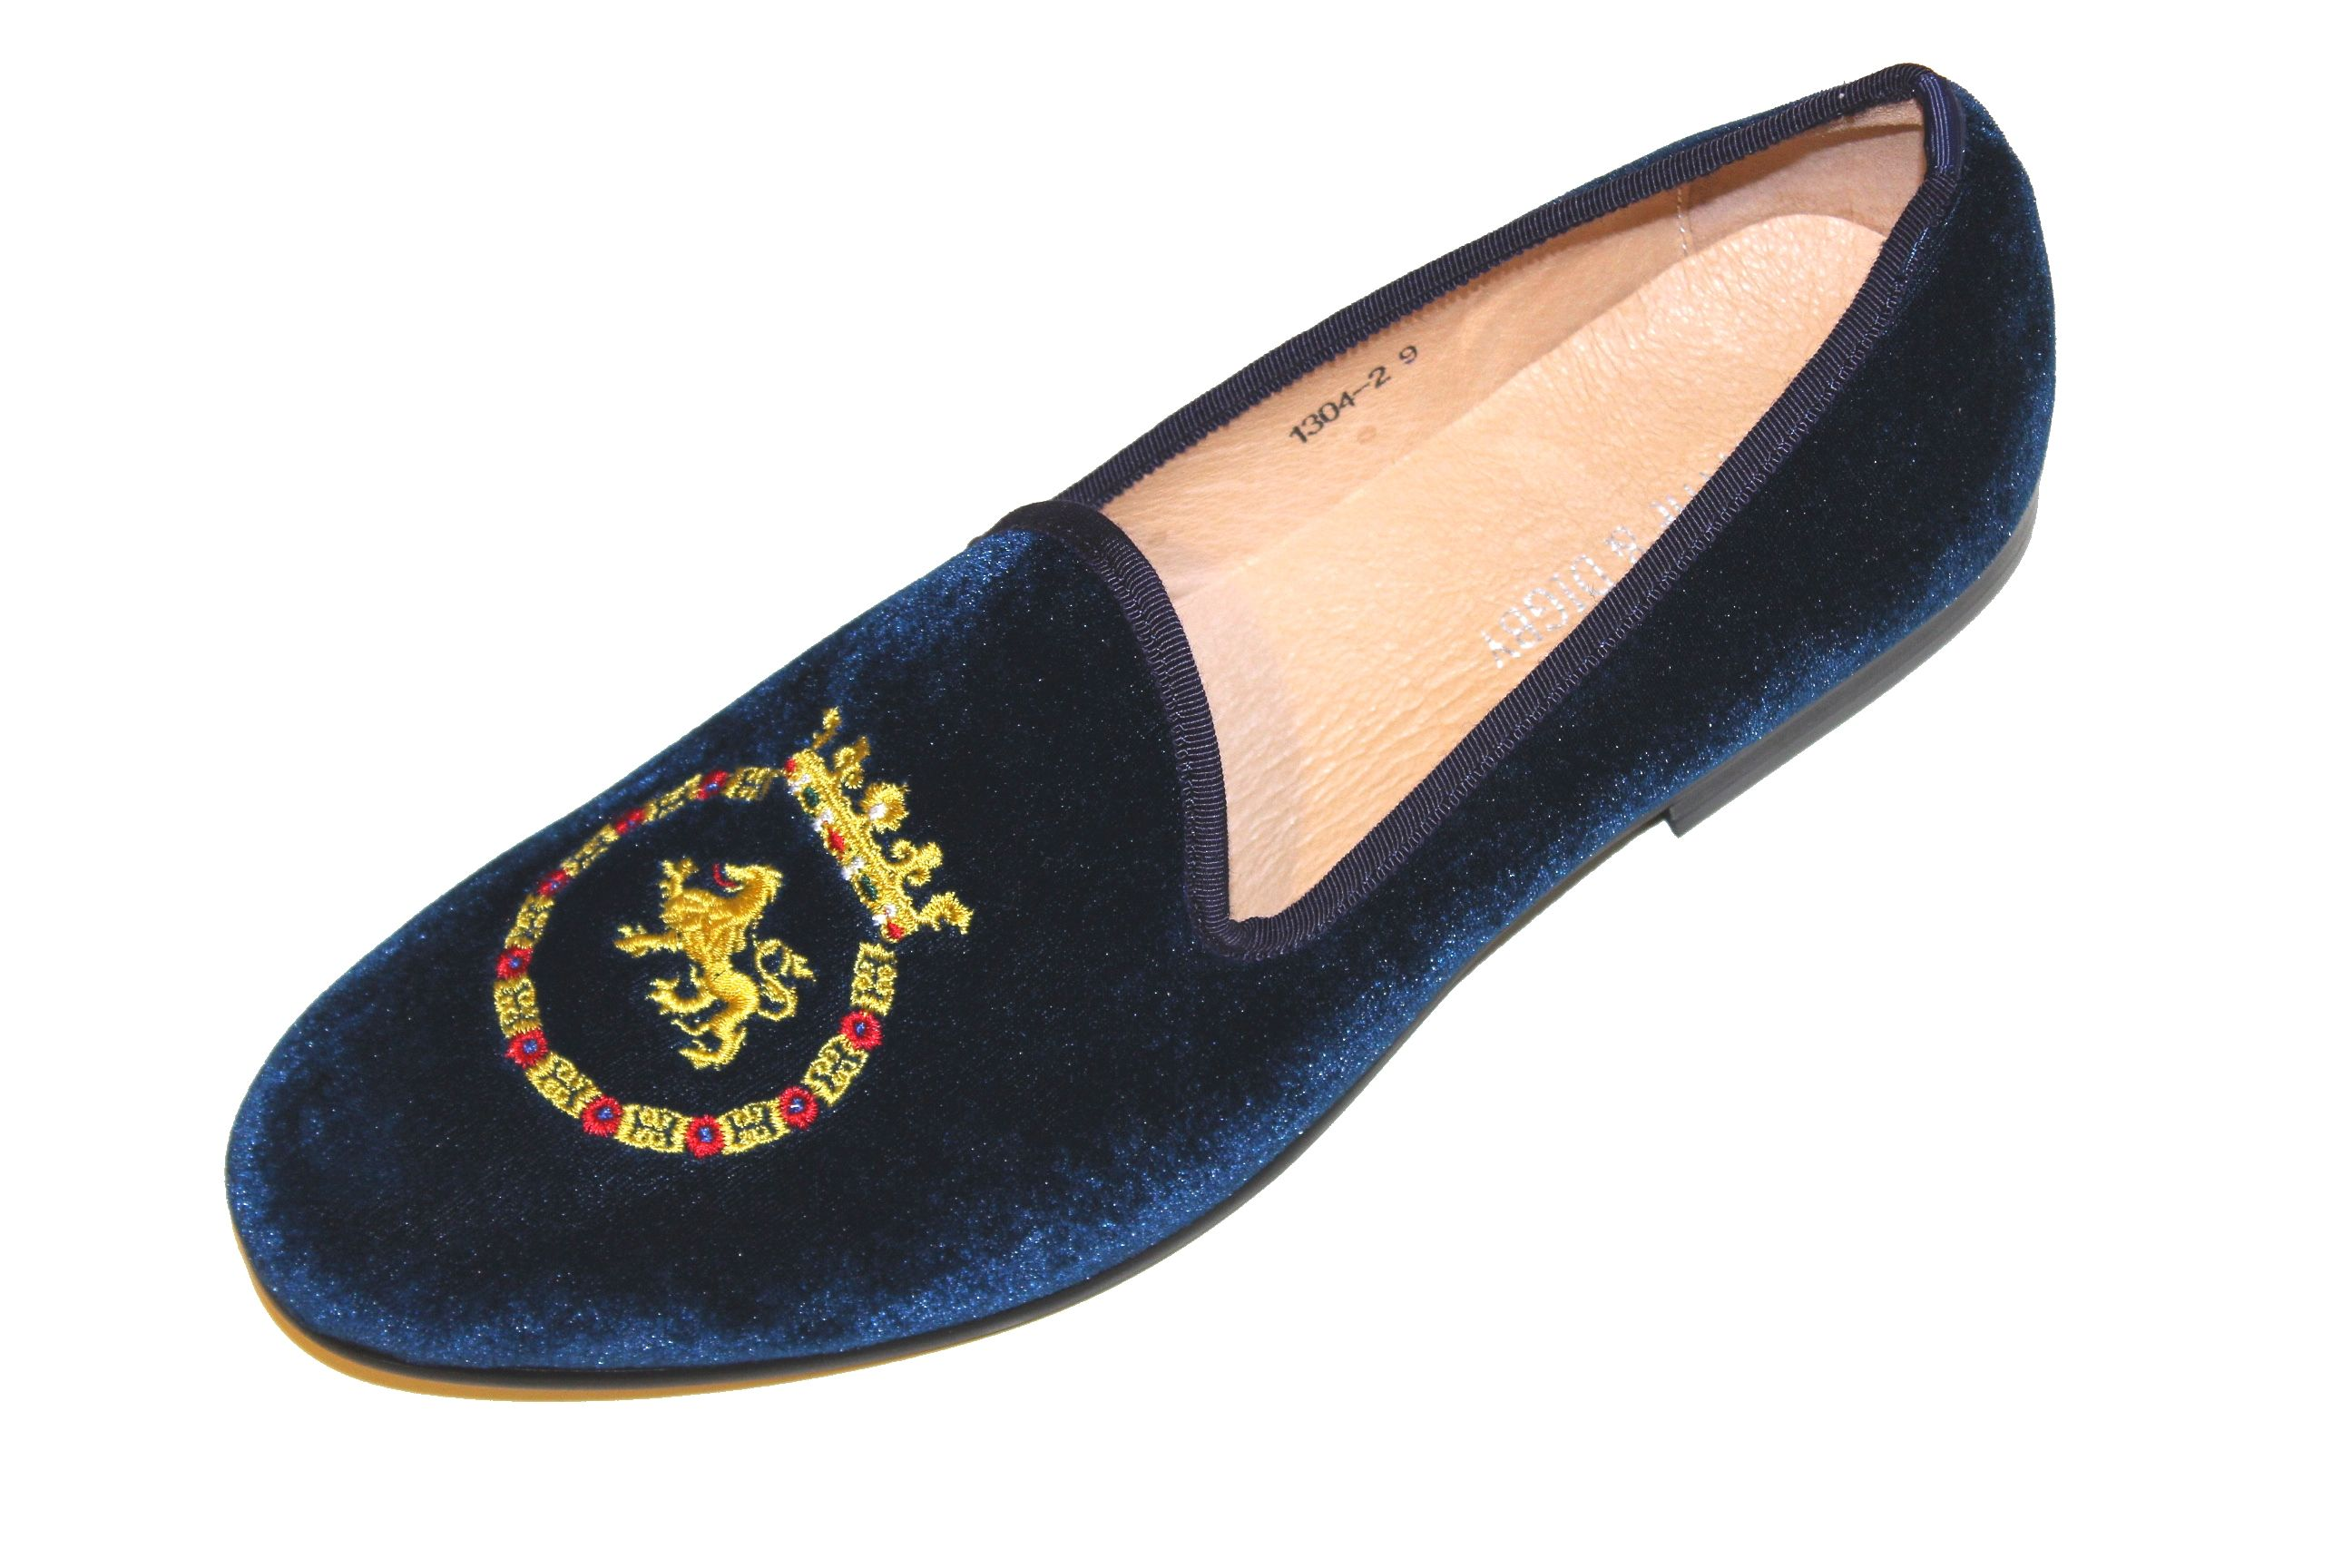 456f44a796974 Navy blue velvet loafer. King crested velvet slippers. | SMYTHE ...